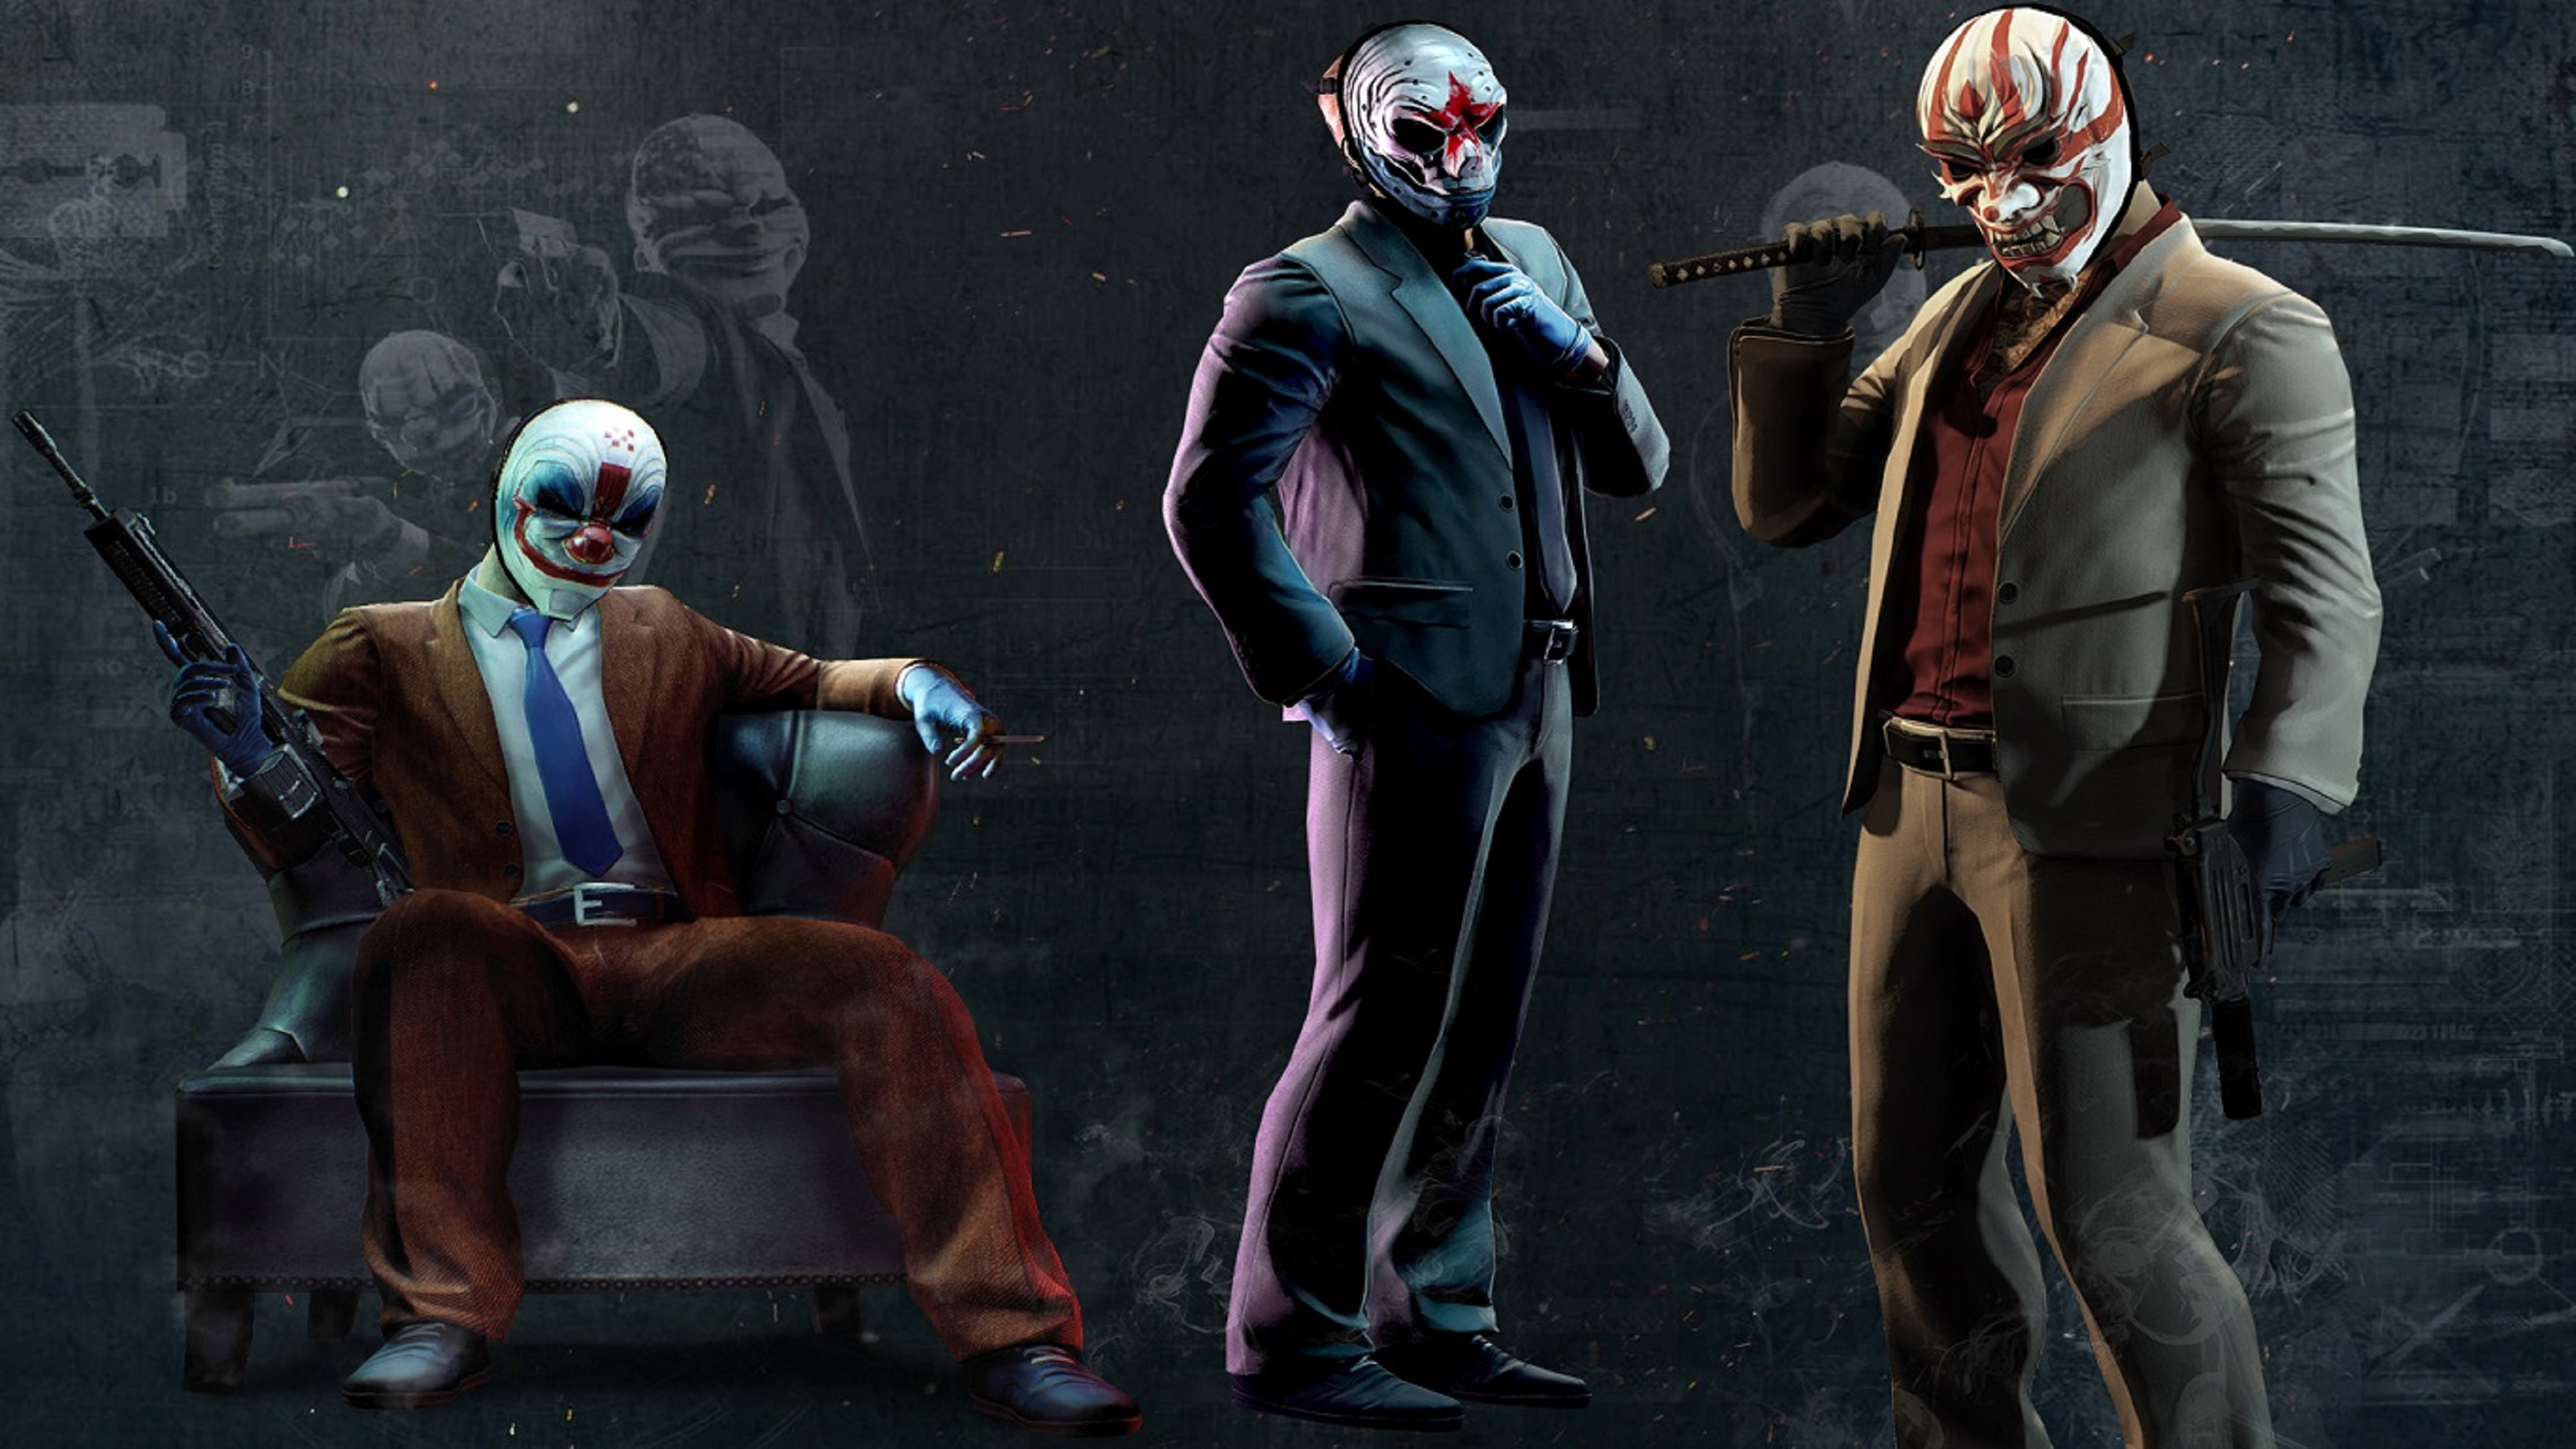 Payday 2 Artwork 2 Hd Games 4k Wallpapers Images Backgrounds